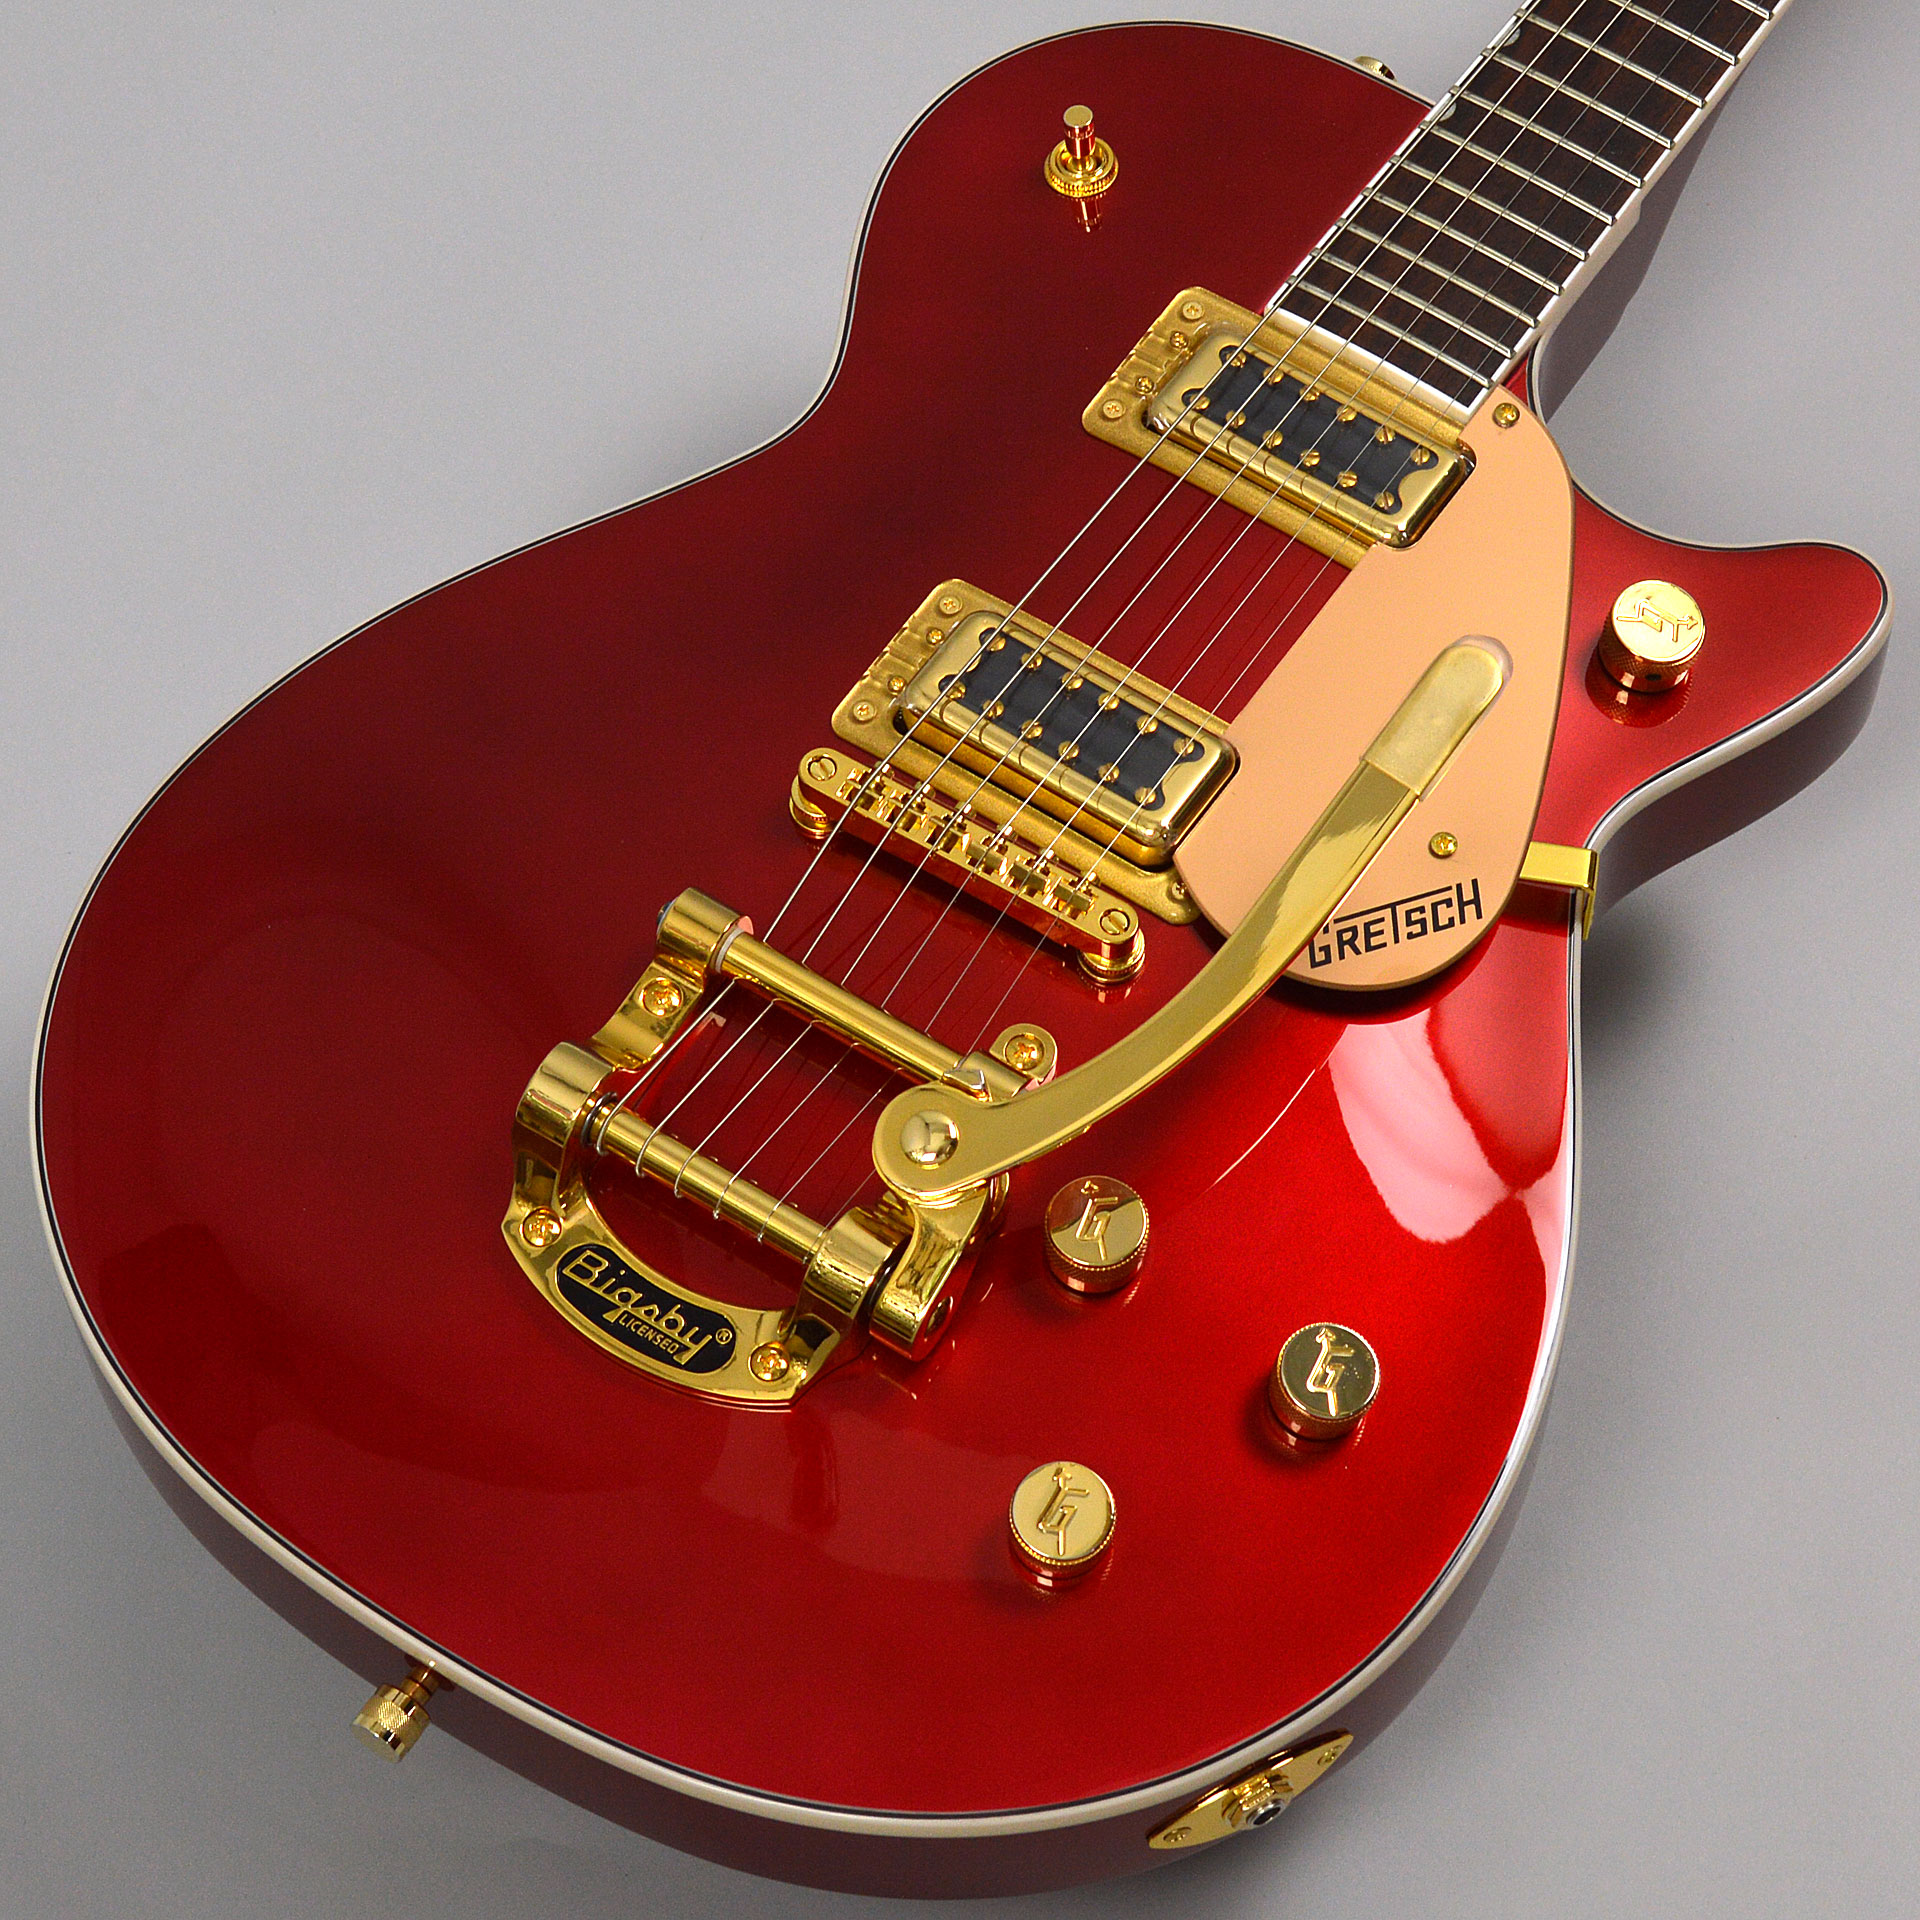 G5435TG Limited Edition Pro Jet with Bigsby Candy Apple Redのボディトップ-アップ画像